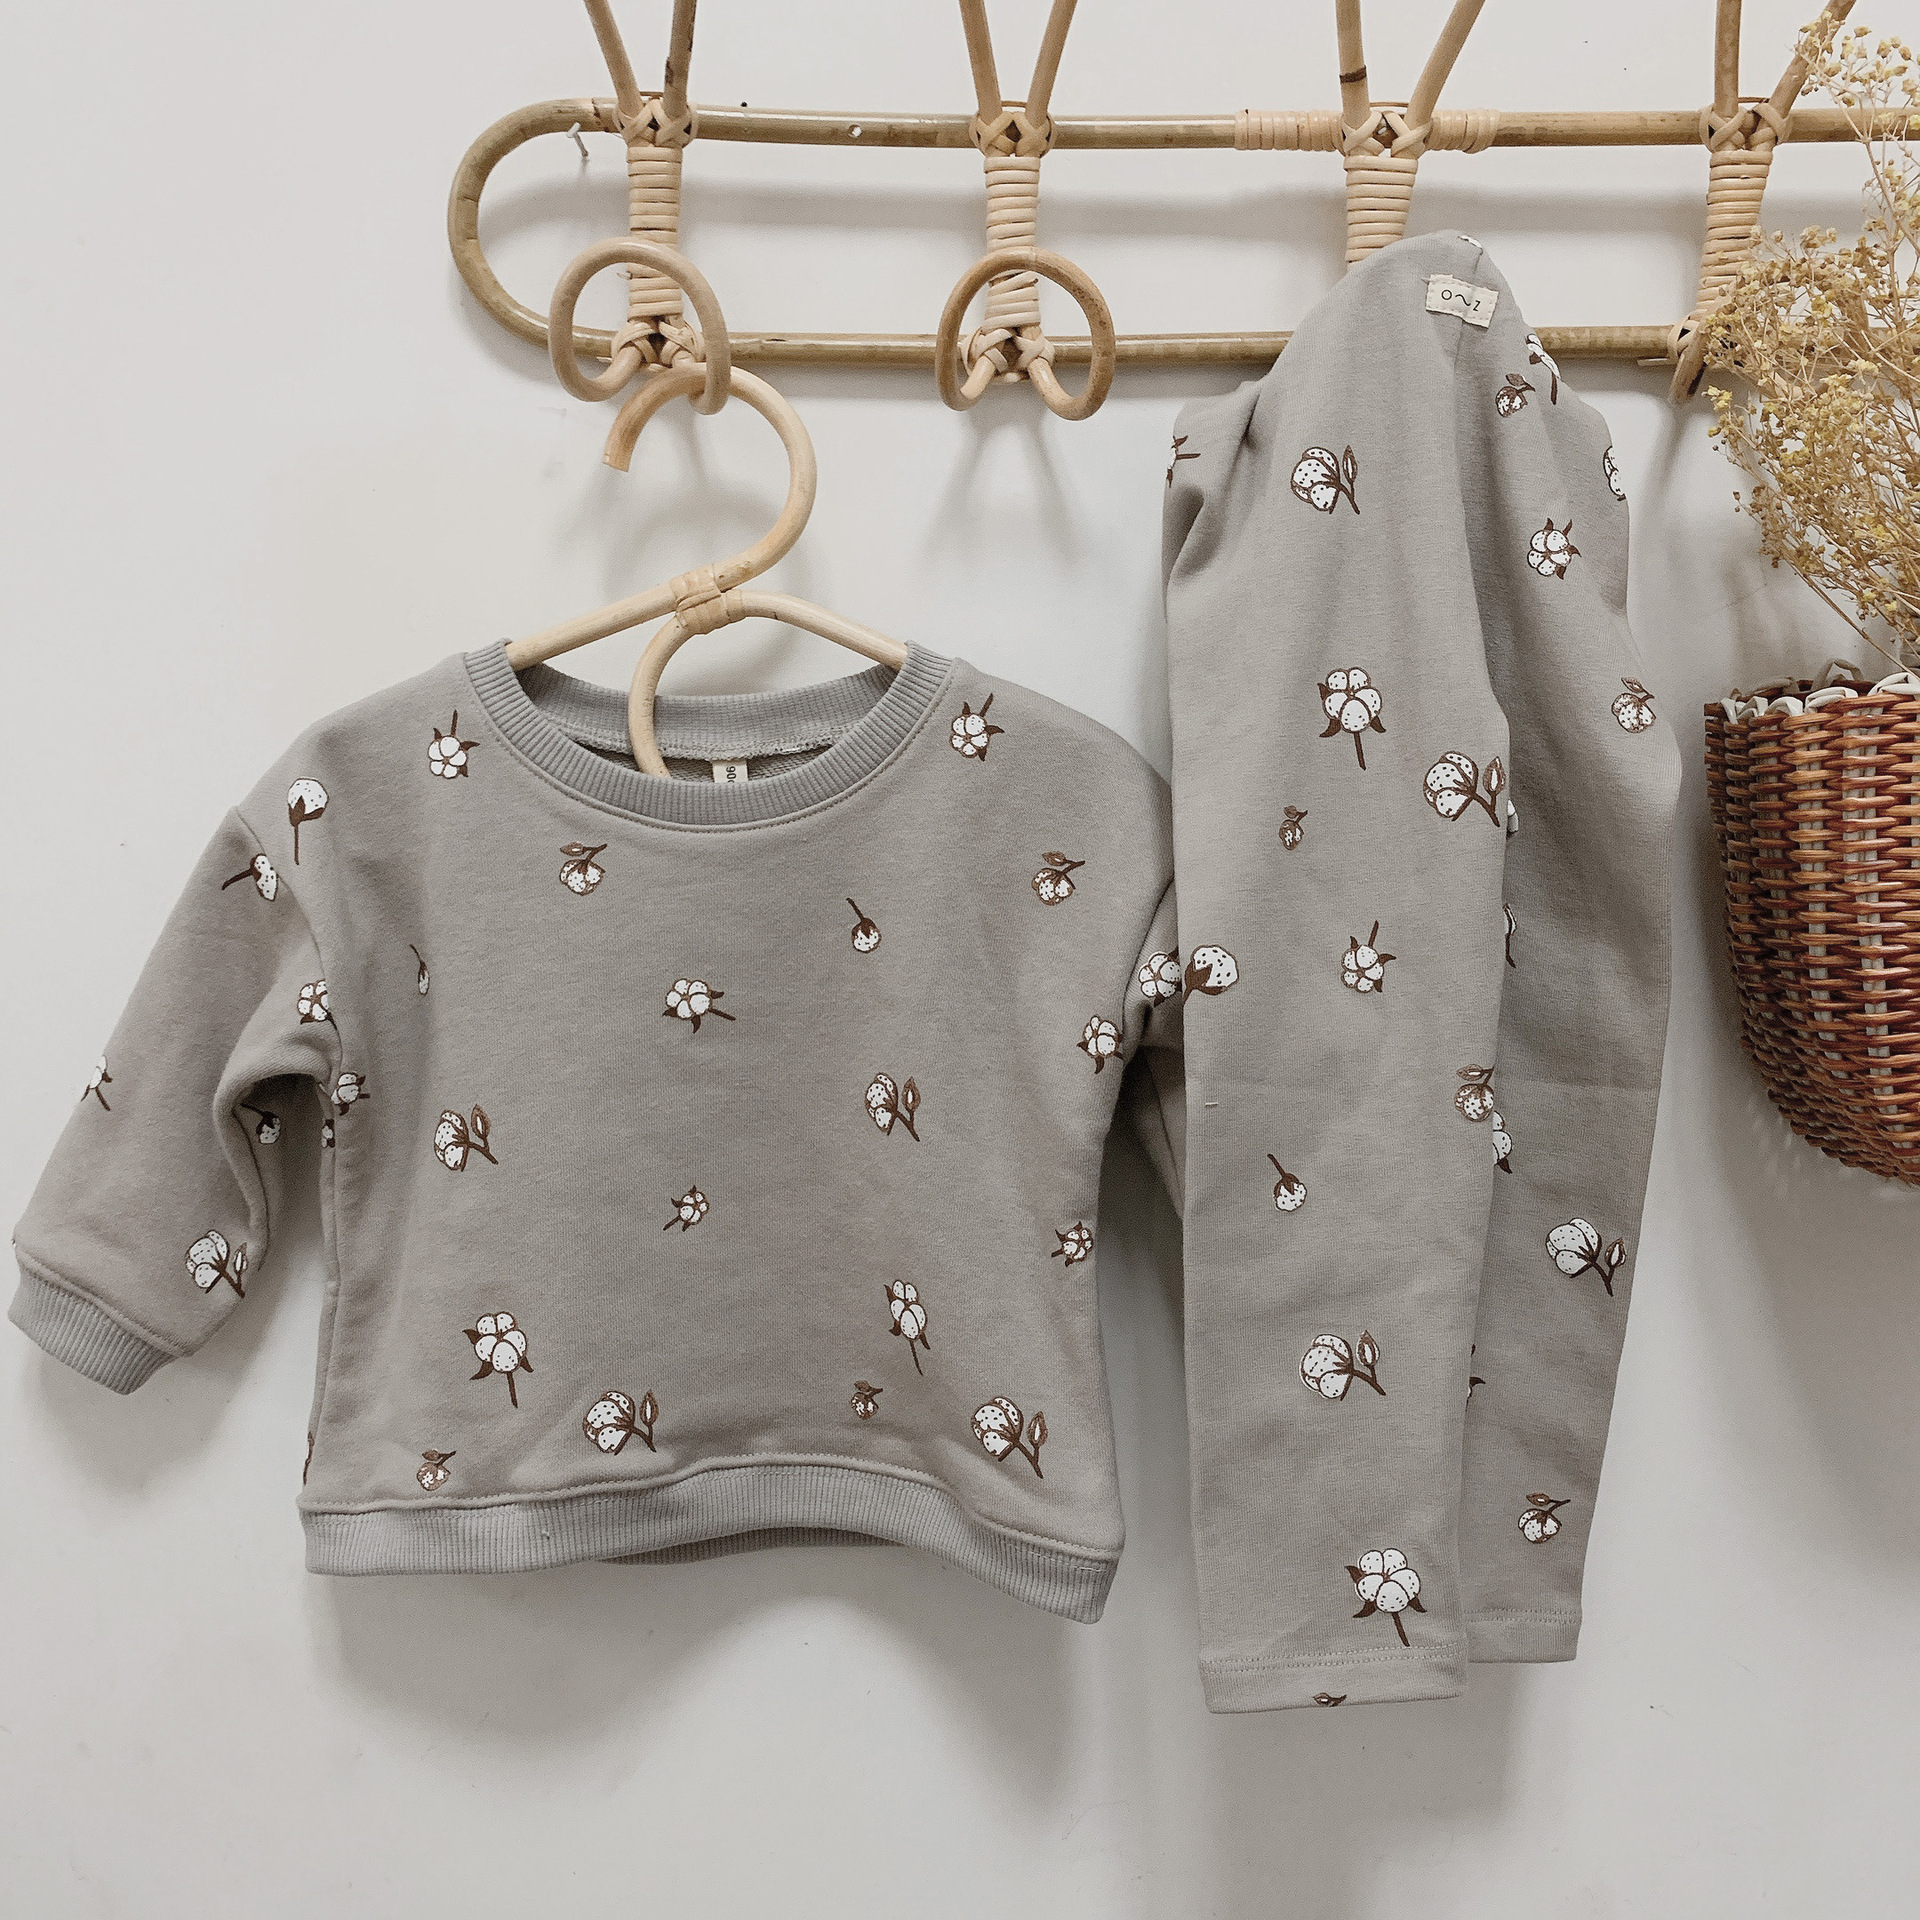 Newborn Sets Unisex Clothes Tops Sweatshirt and Pants Child Boys Casual Fashion Kids Long Sleeve Girl Boy Cotton Clothes Sets 4